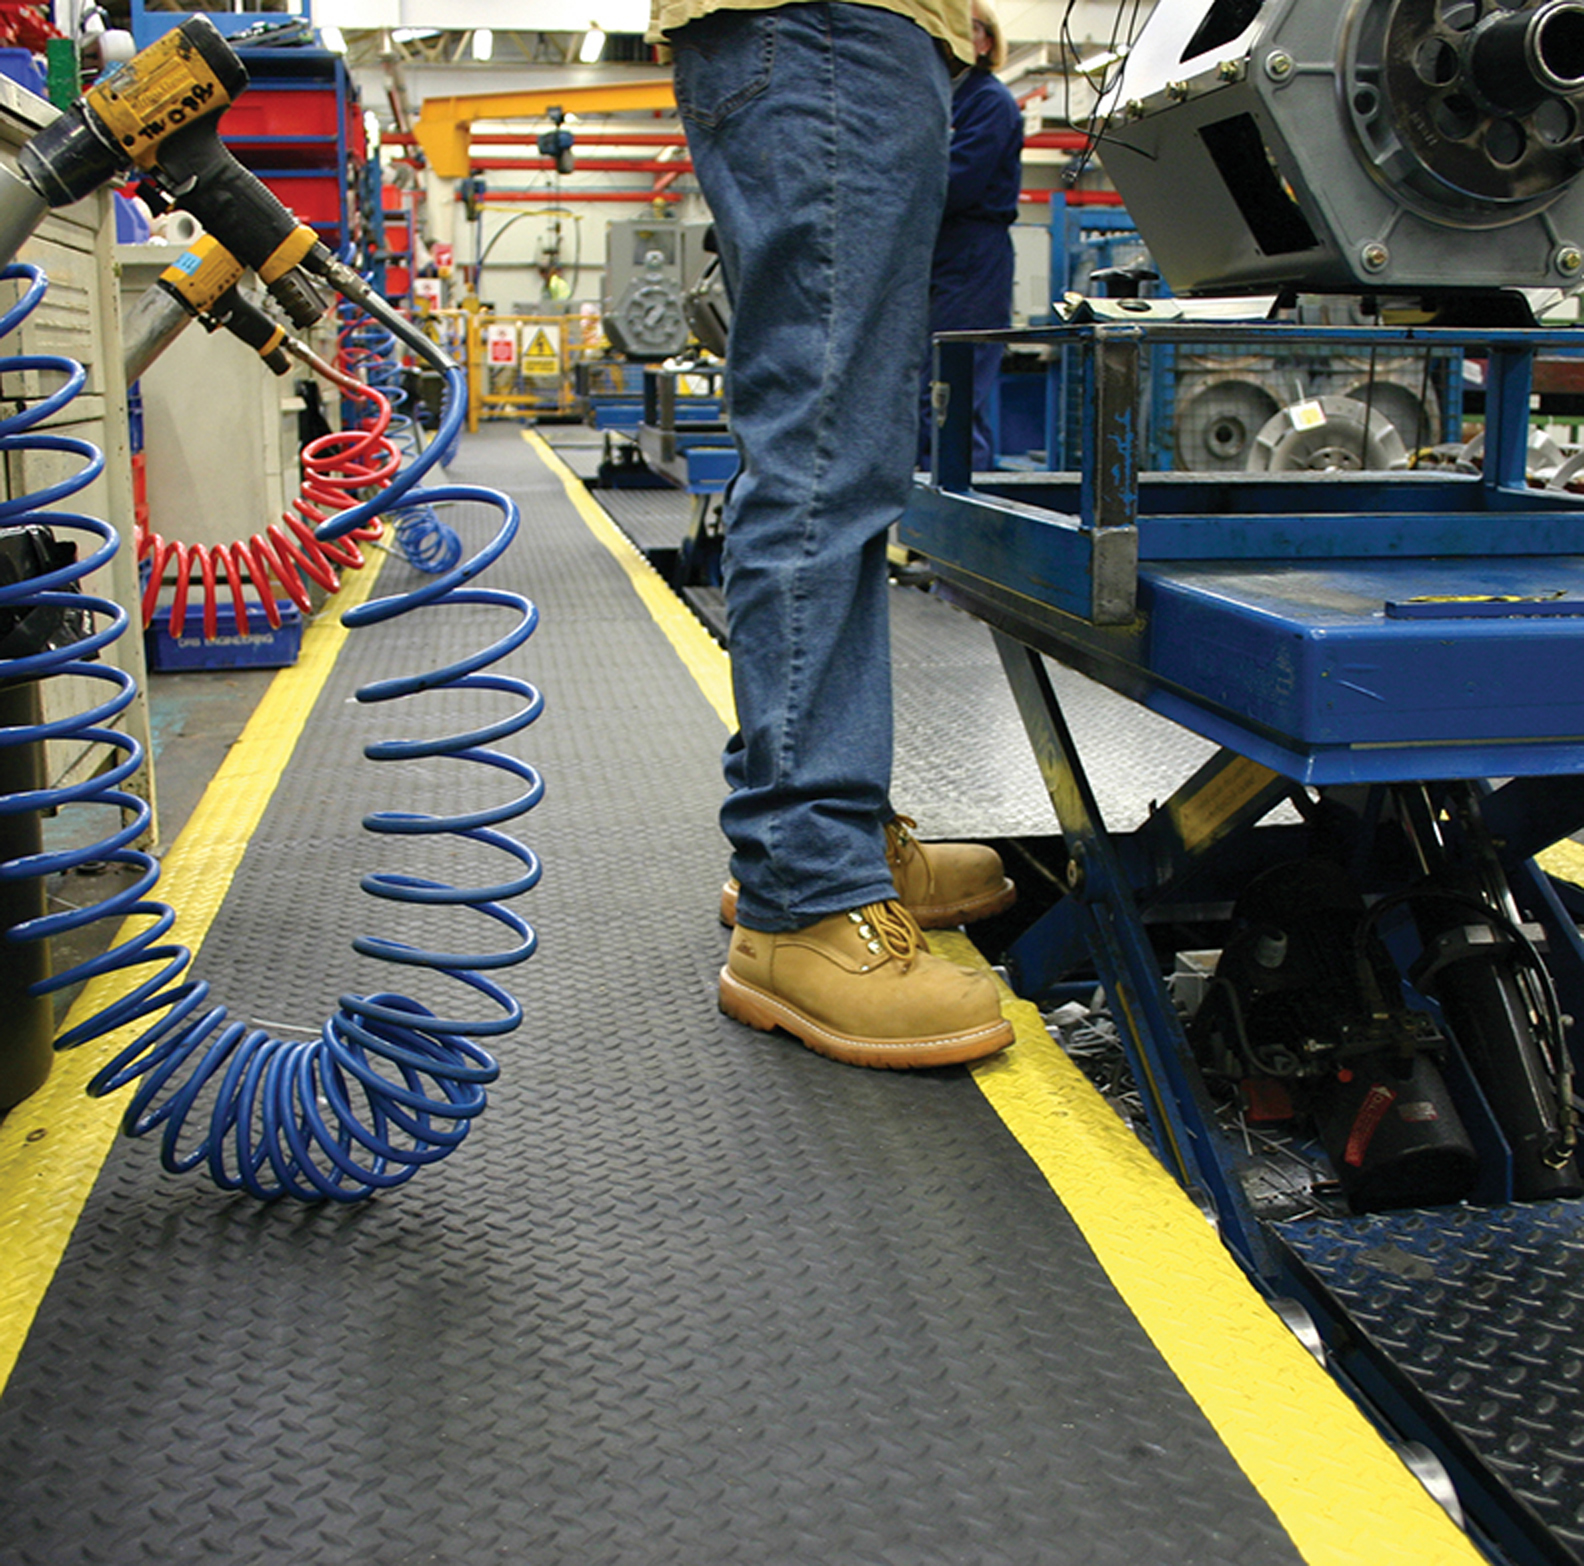 CUSTOM LENGTH ANTI-FATIGUE MATS NOW AVAILABLE FROM FIRST MATS